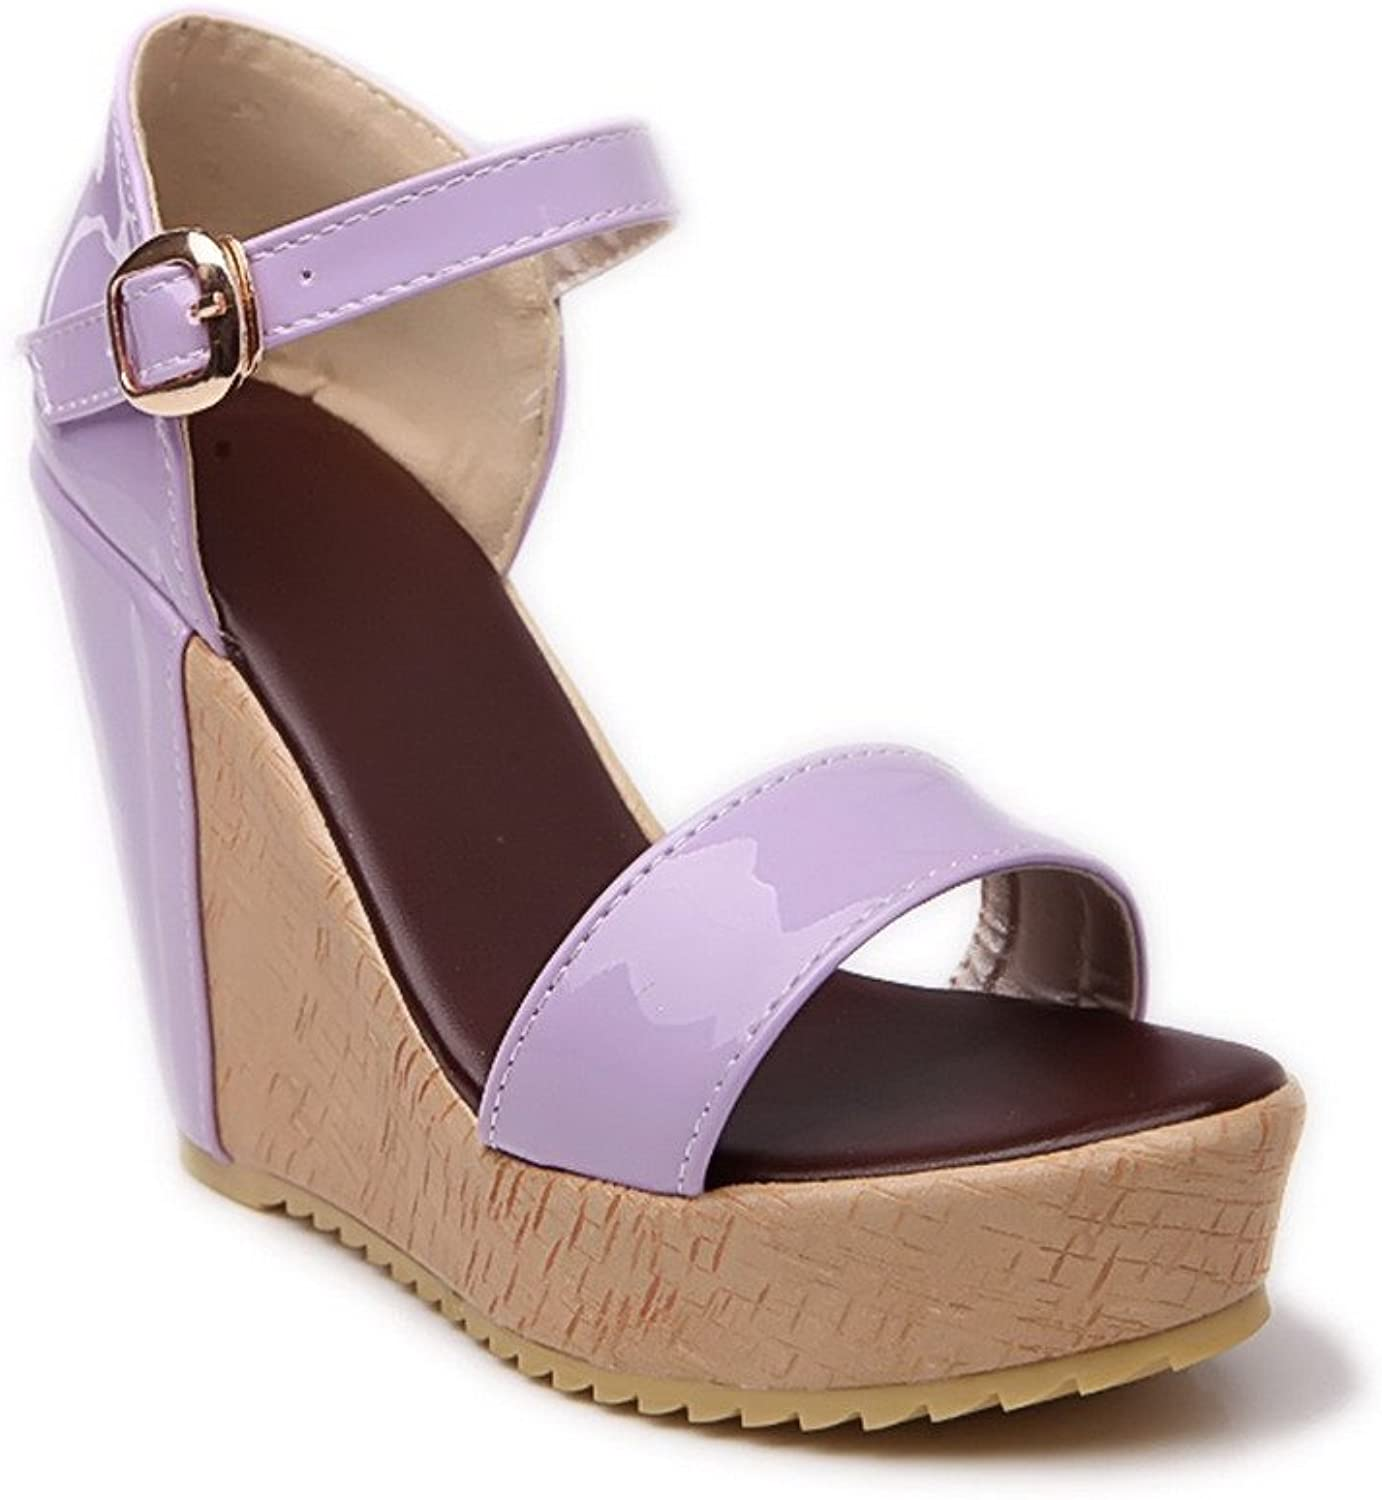 AmoonyFashion Womens Open Toe High Heel Wedge Platform Patent Leather PU Sandals with Assorted colors, Purple, 7.5 B(M) US